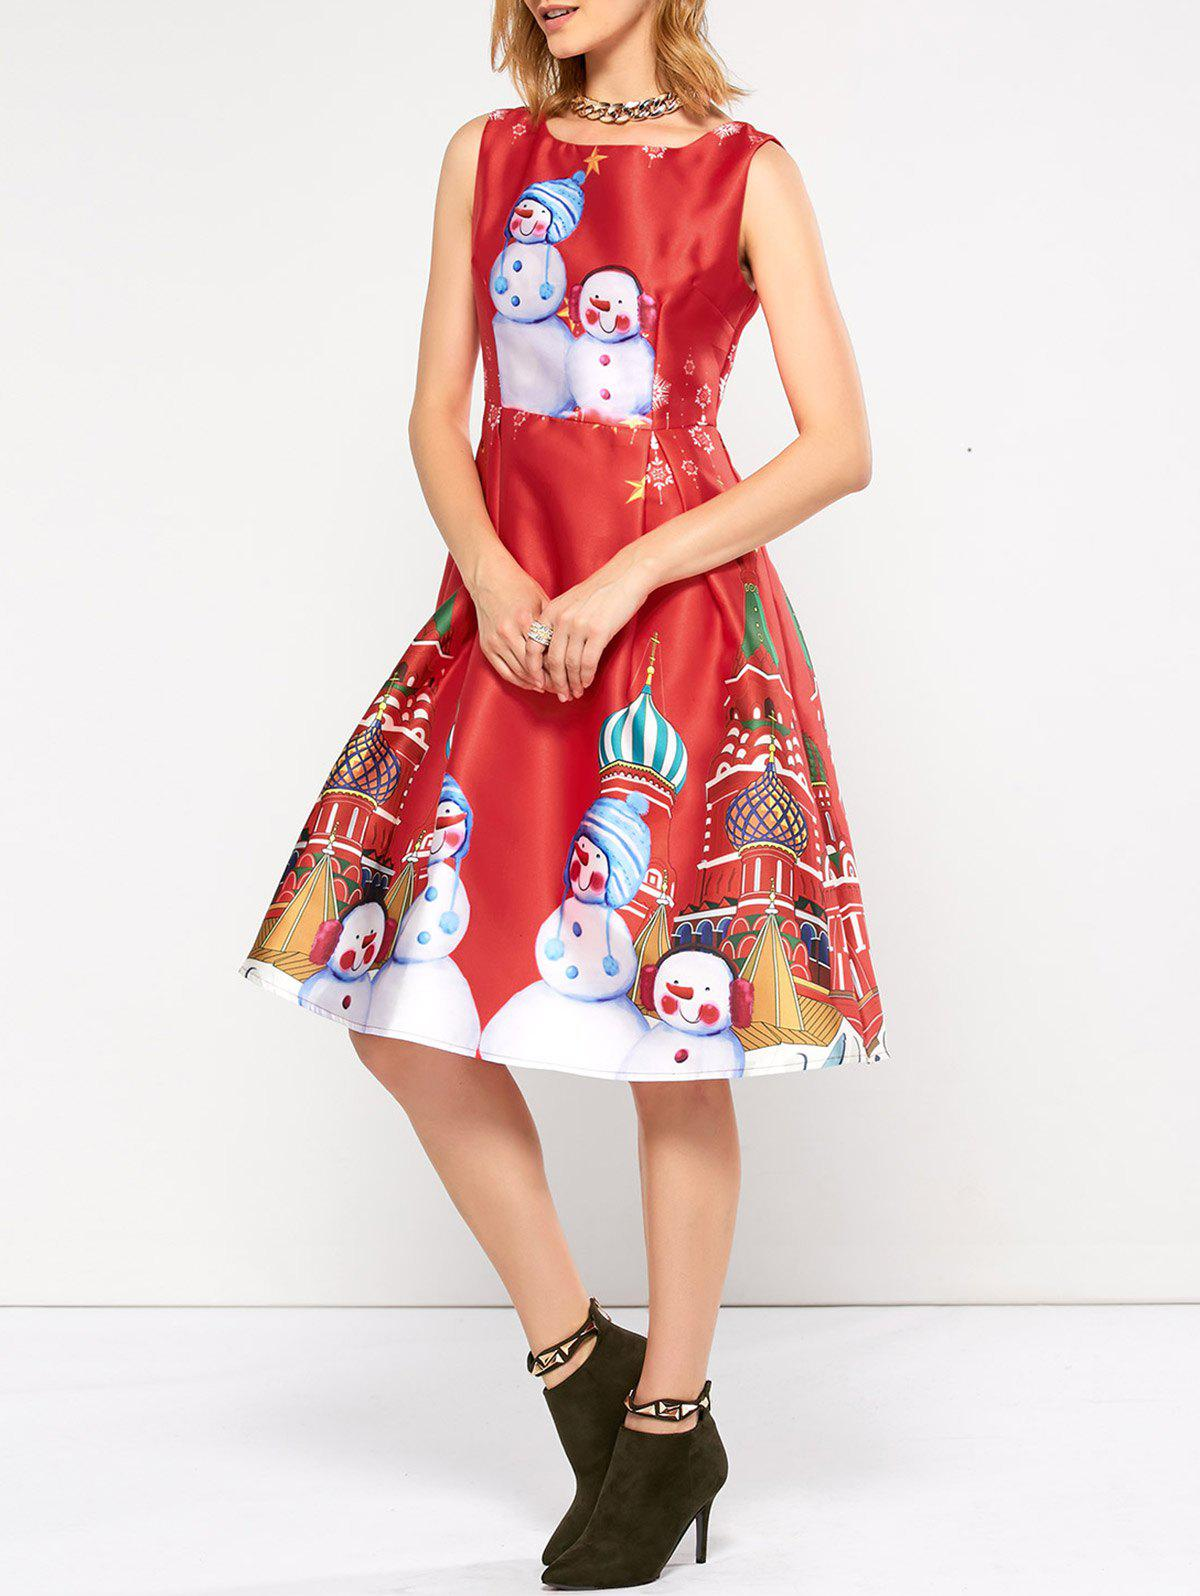 Sleeveless Snowman Christmas Skater Party DressWOMEN<br><br>Size: L; Color: RED; Style: Cute; Material: Polyester; Silhouette: A-Line; Dresses Length: Knee-Length; Neckline: Round Collar; Sleeve Length: Sleeveless; Pattern Type: Character; With Belt: No; Season: Fall,Spring,Summer; Weight: 0.350kg; Package Contents: 1 x Dress;